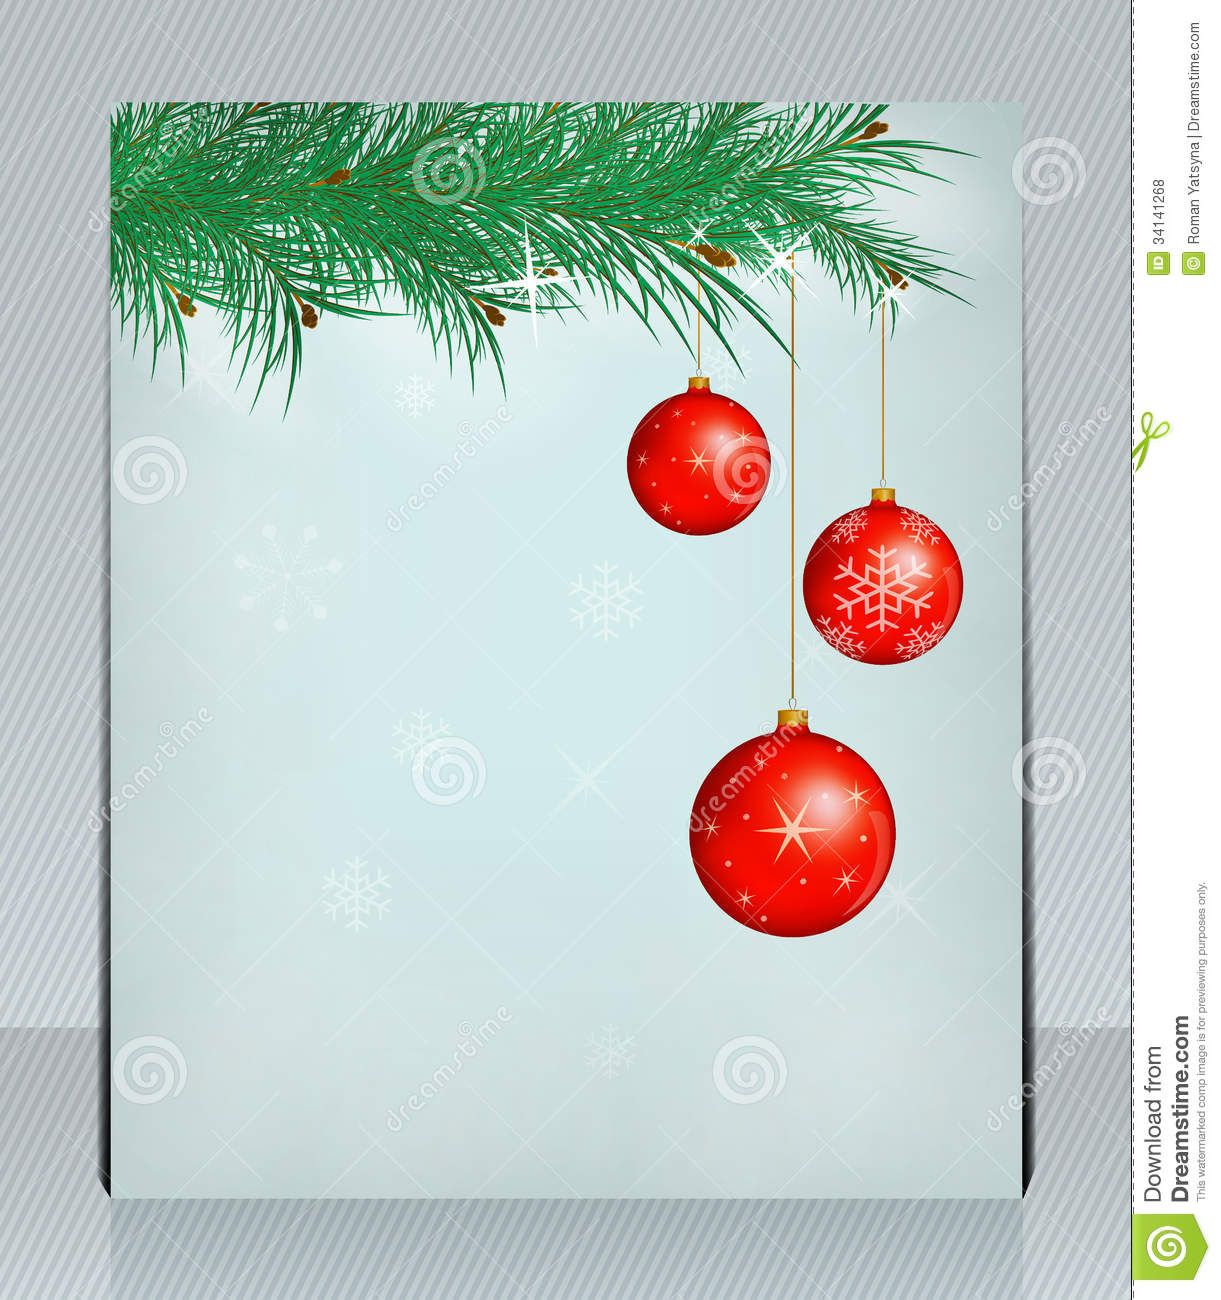 Christmas Brochure Templates Free  Google Search  Sacfo